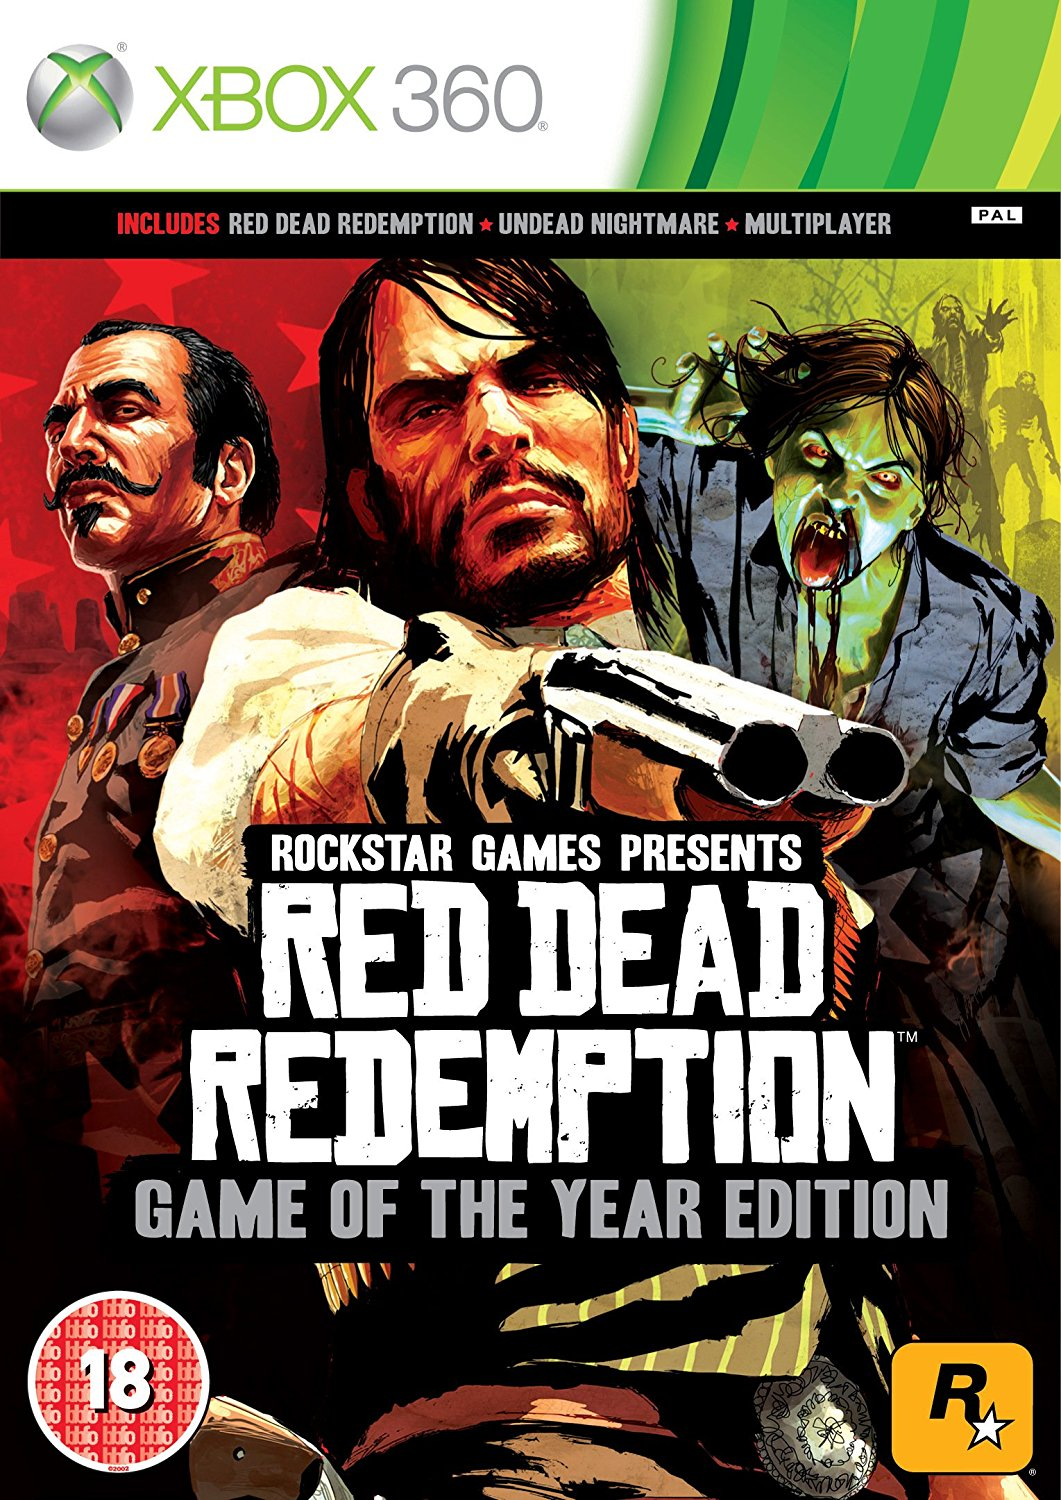 Red Dead Redemption 2 Xbox 360 Revealed; Game interactions